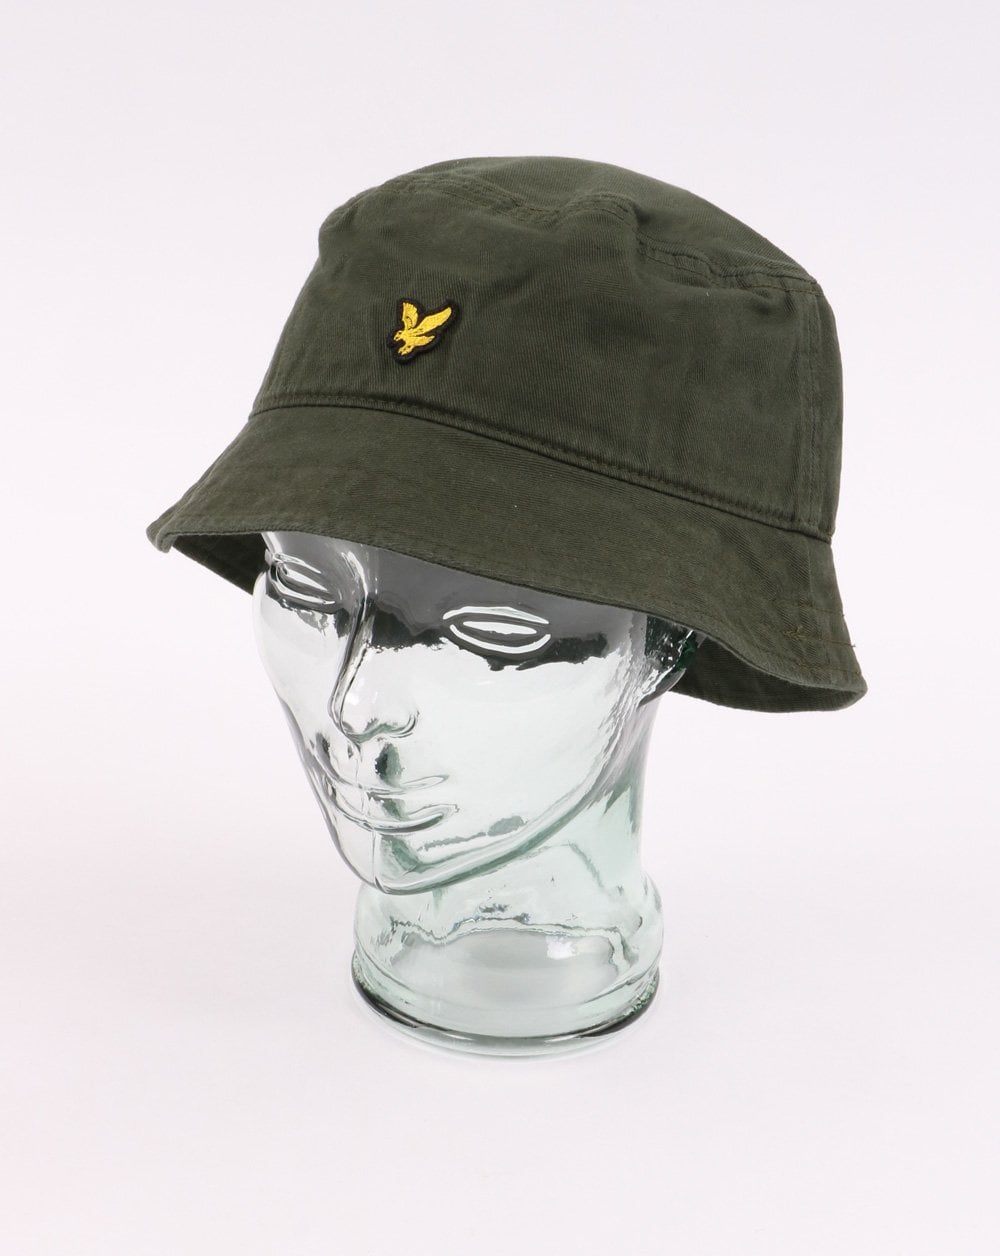 6b48f4b21ded90 Lyle and Scott Lyle And Scott Cotton Twill Bucket Hat Leaf Green